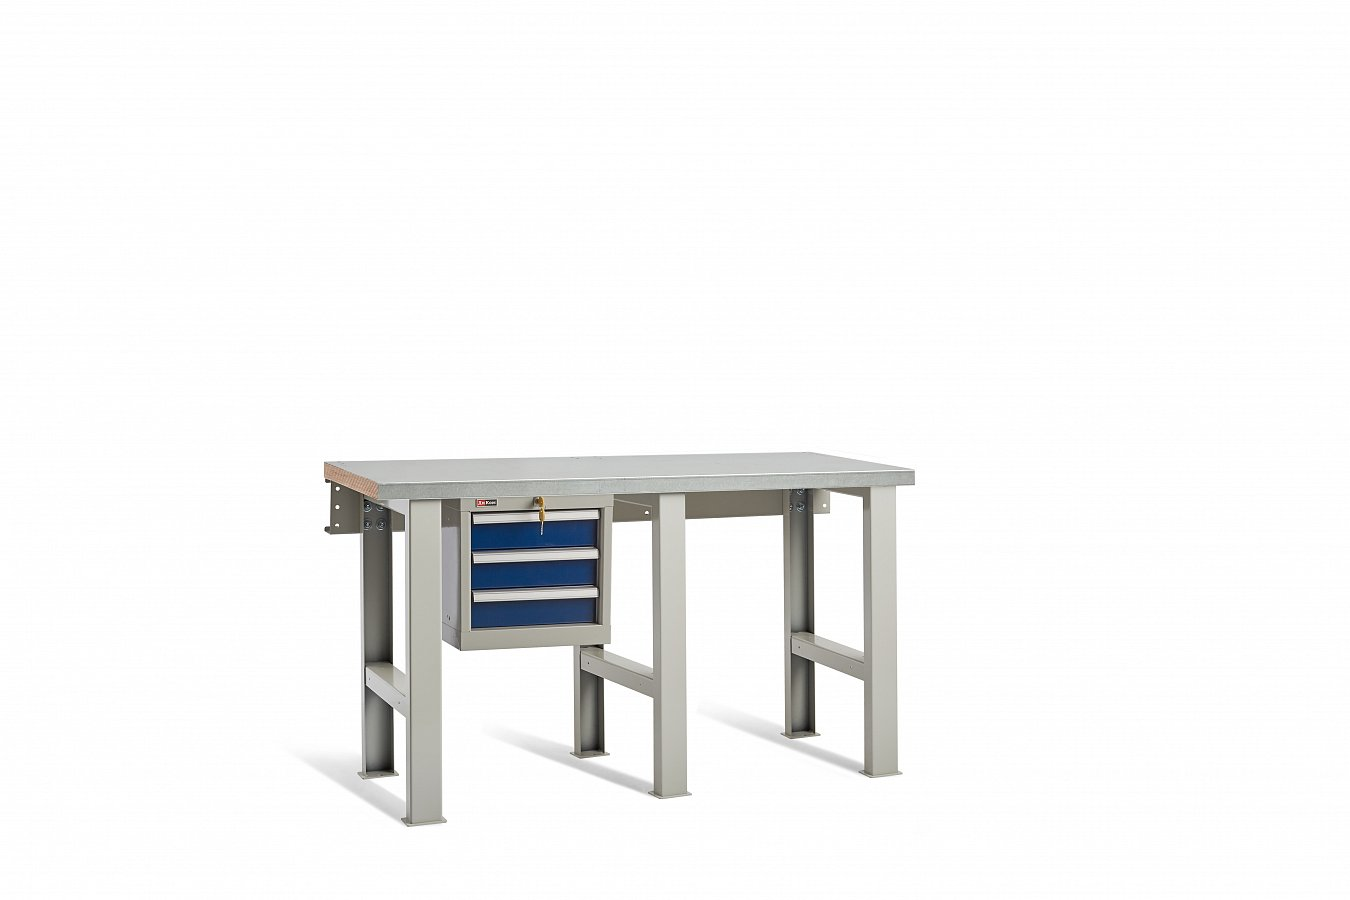 DiKom Workbench VS-150-02 (6)